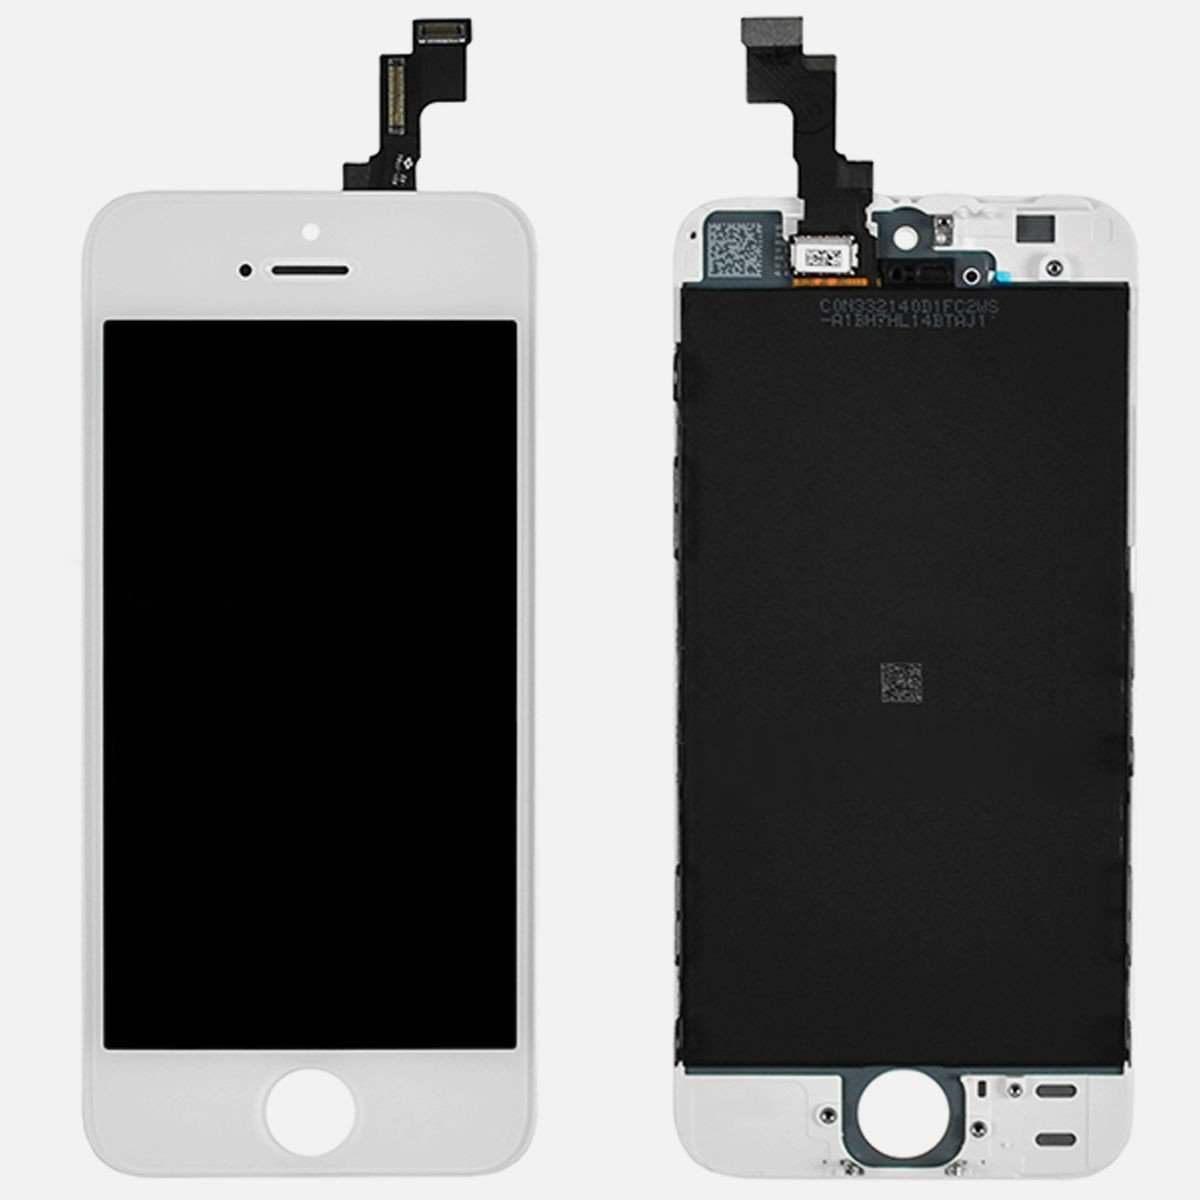 OEM White Retina LCD Touch Screen Digitizer Glass Replacement Full Assembly for iPhone 5S